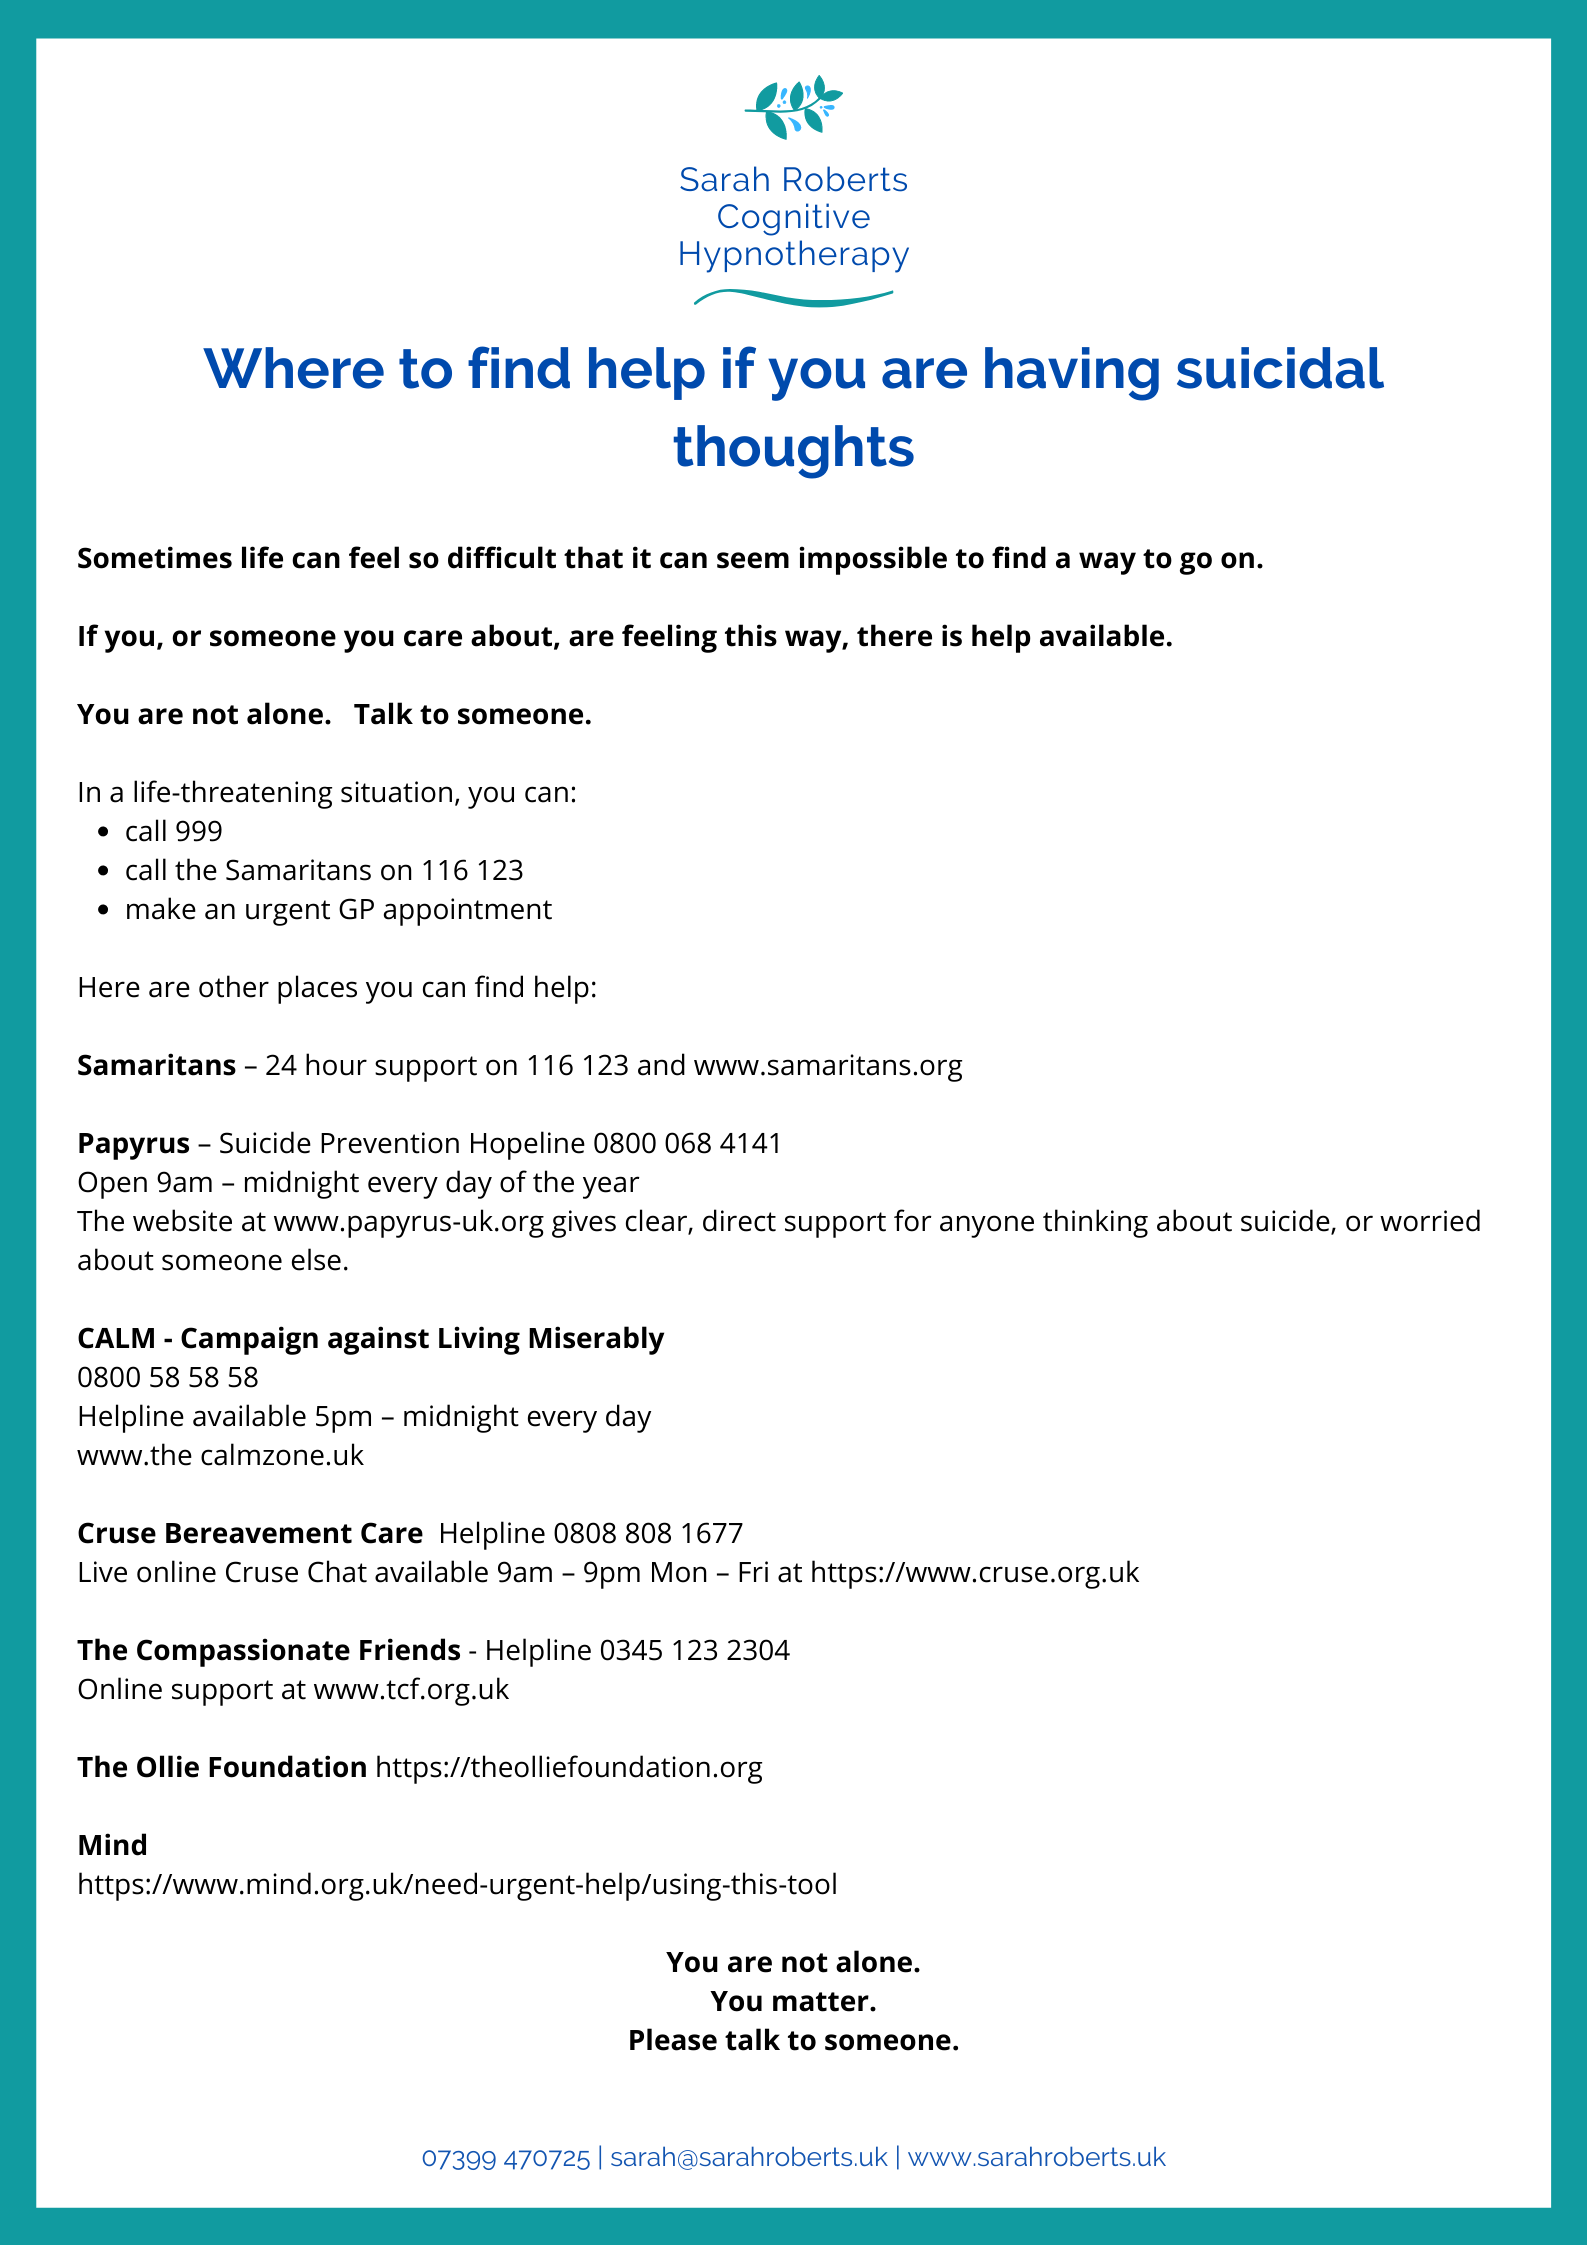 Where to find help with suicidal thoughts